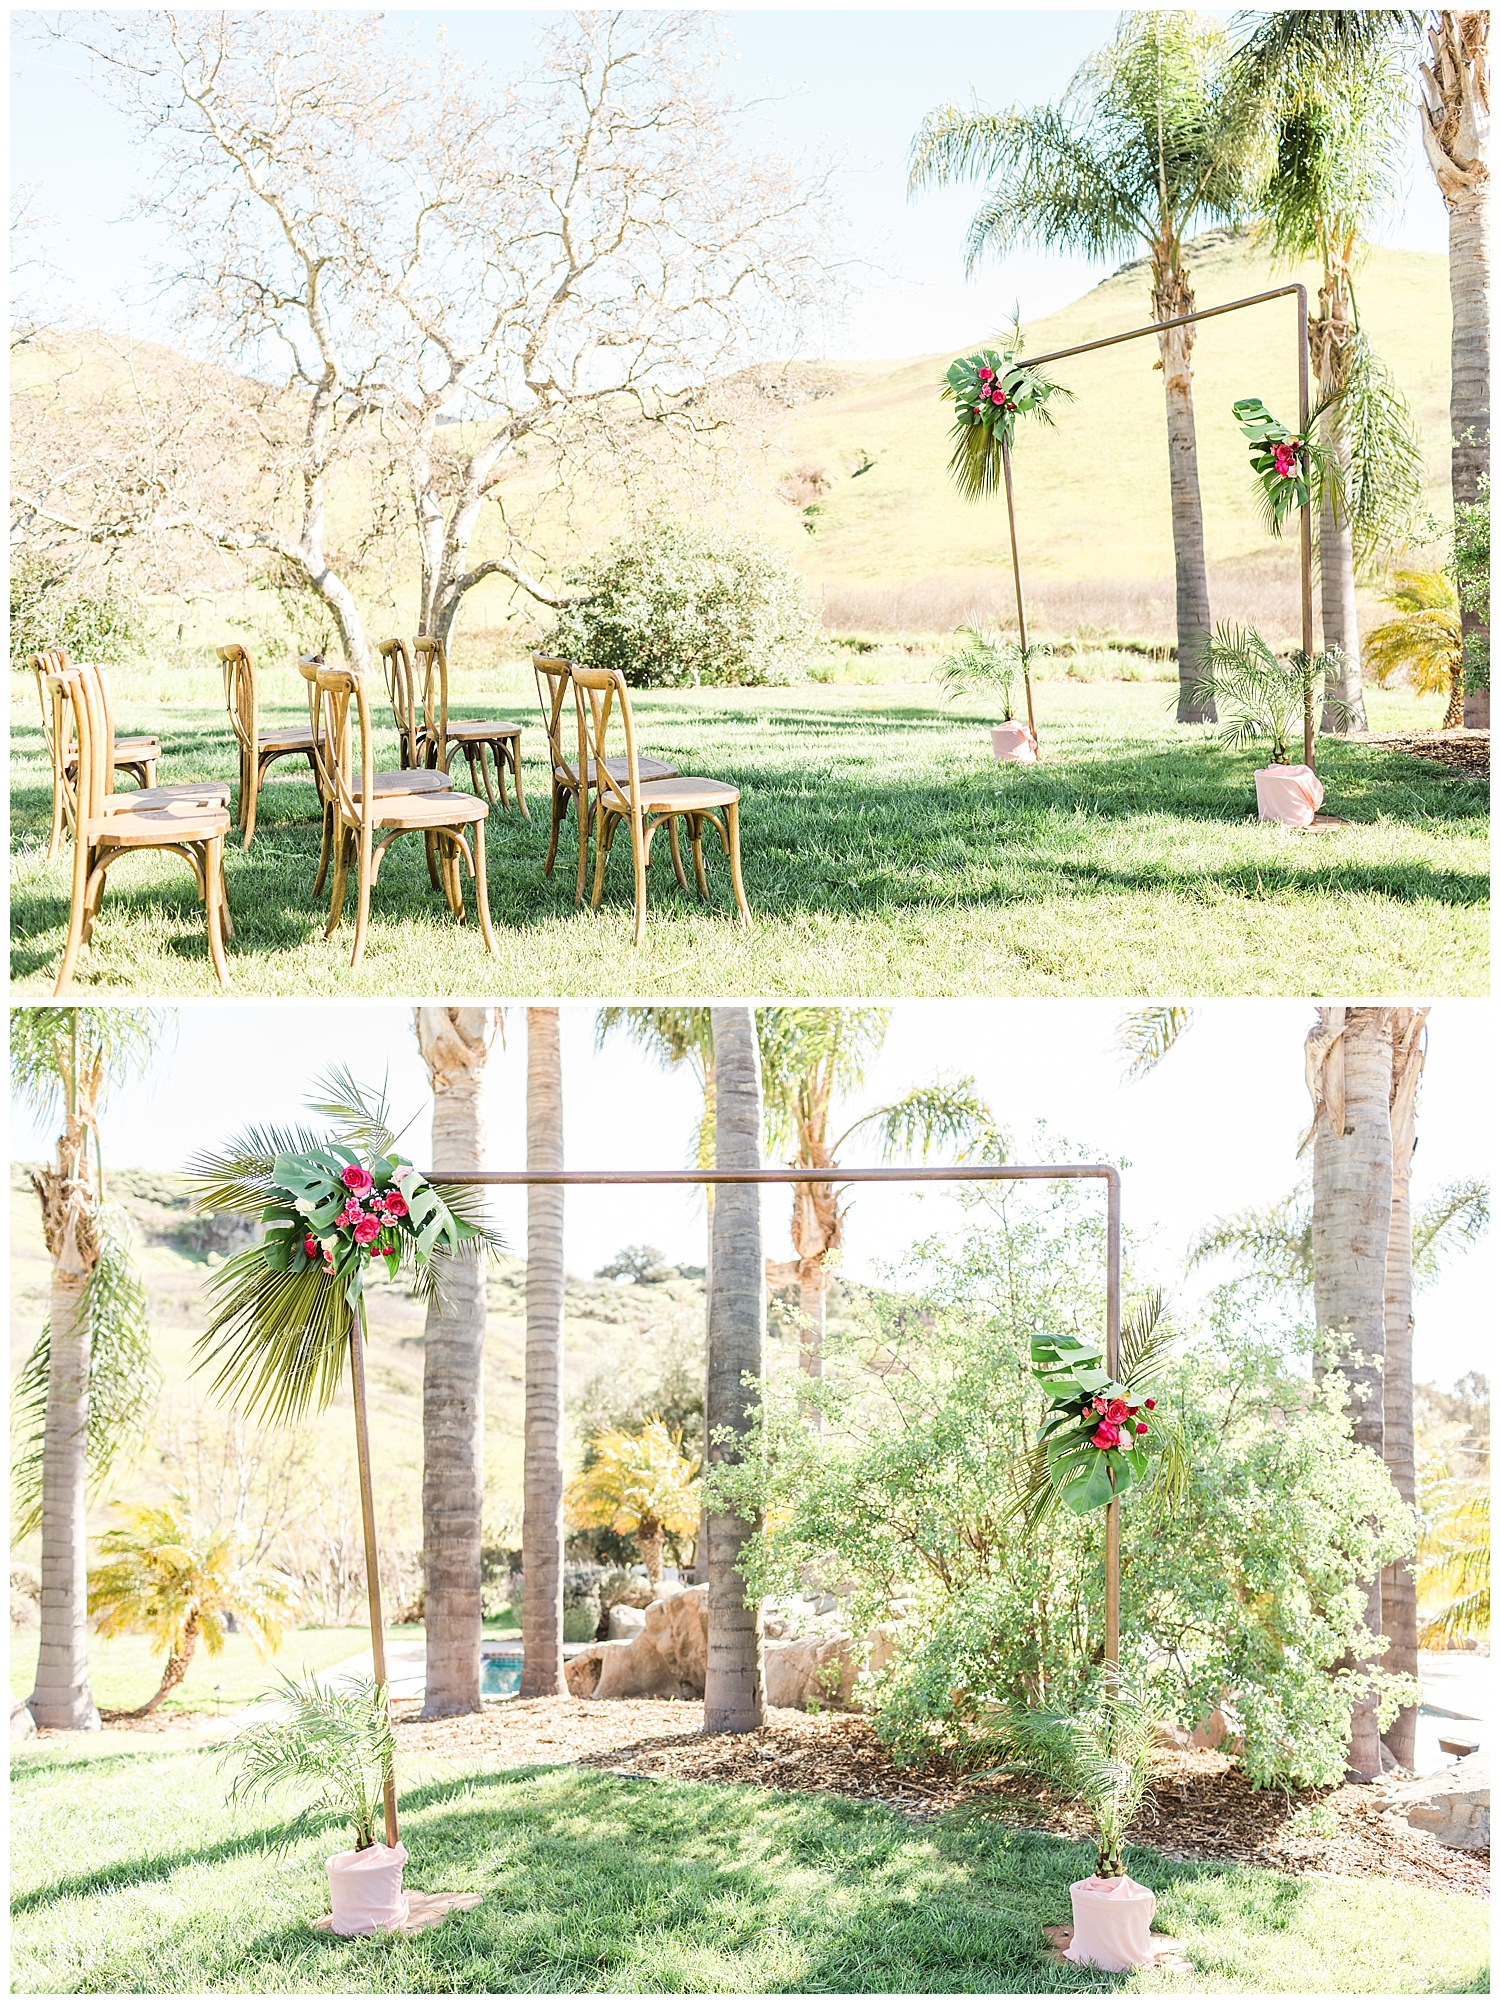 Ceremony-embellish-vintage-tropical-theme.jpg